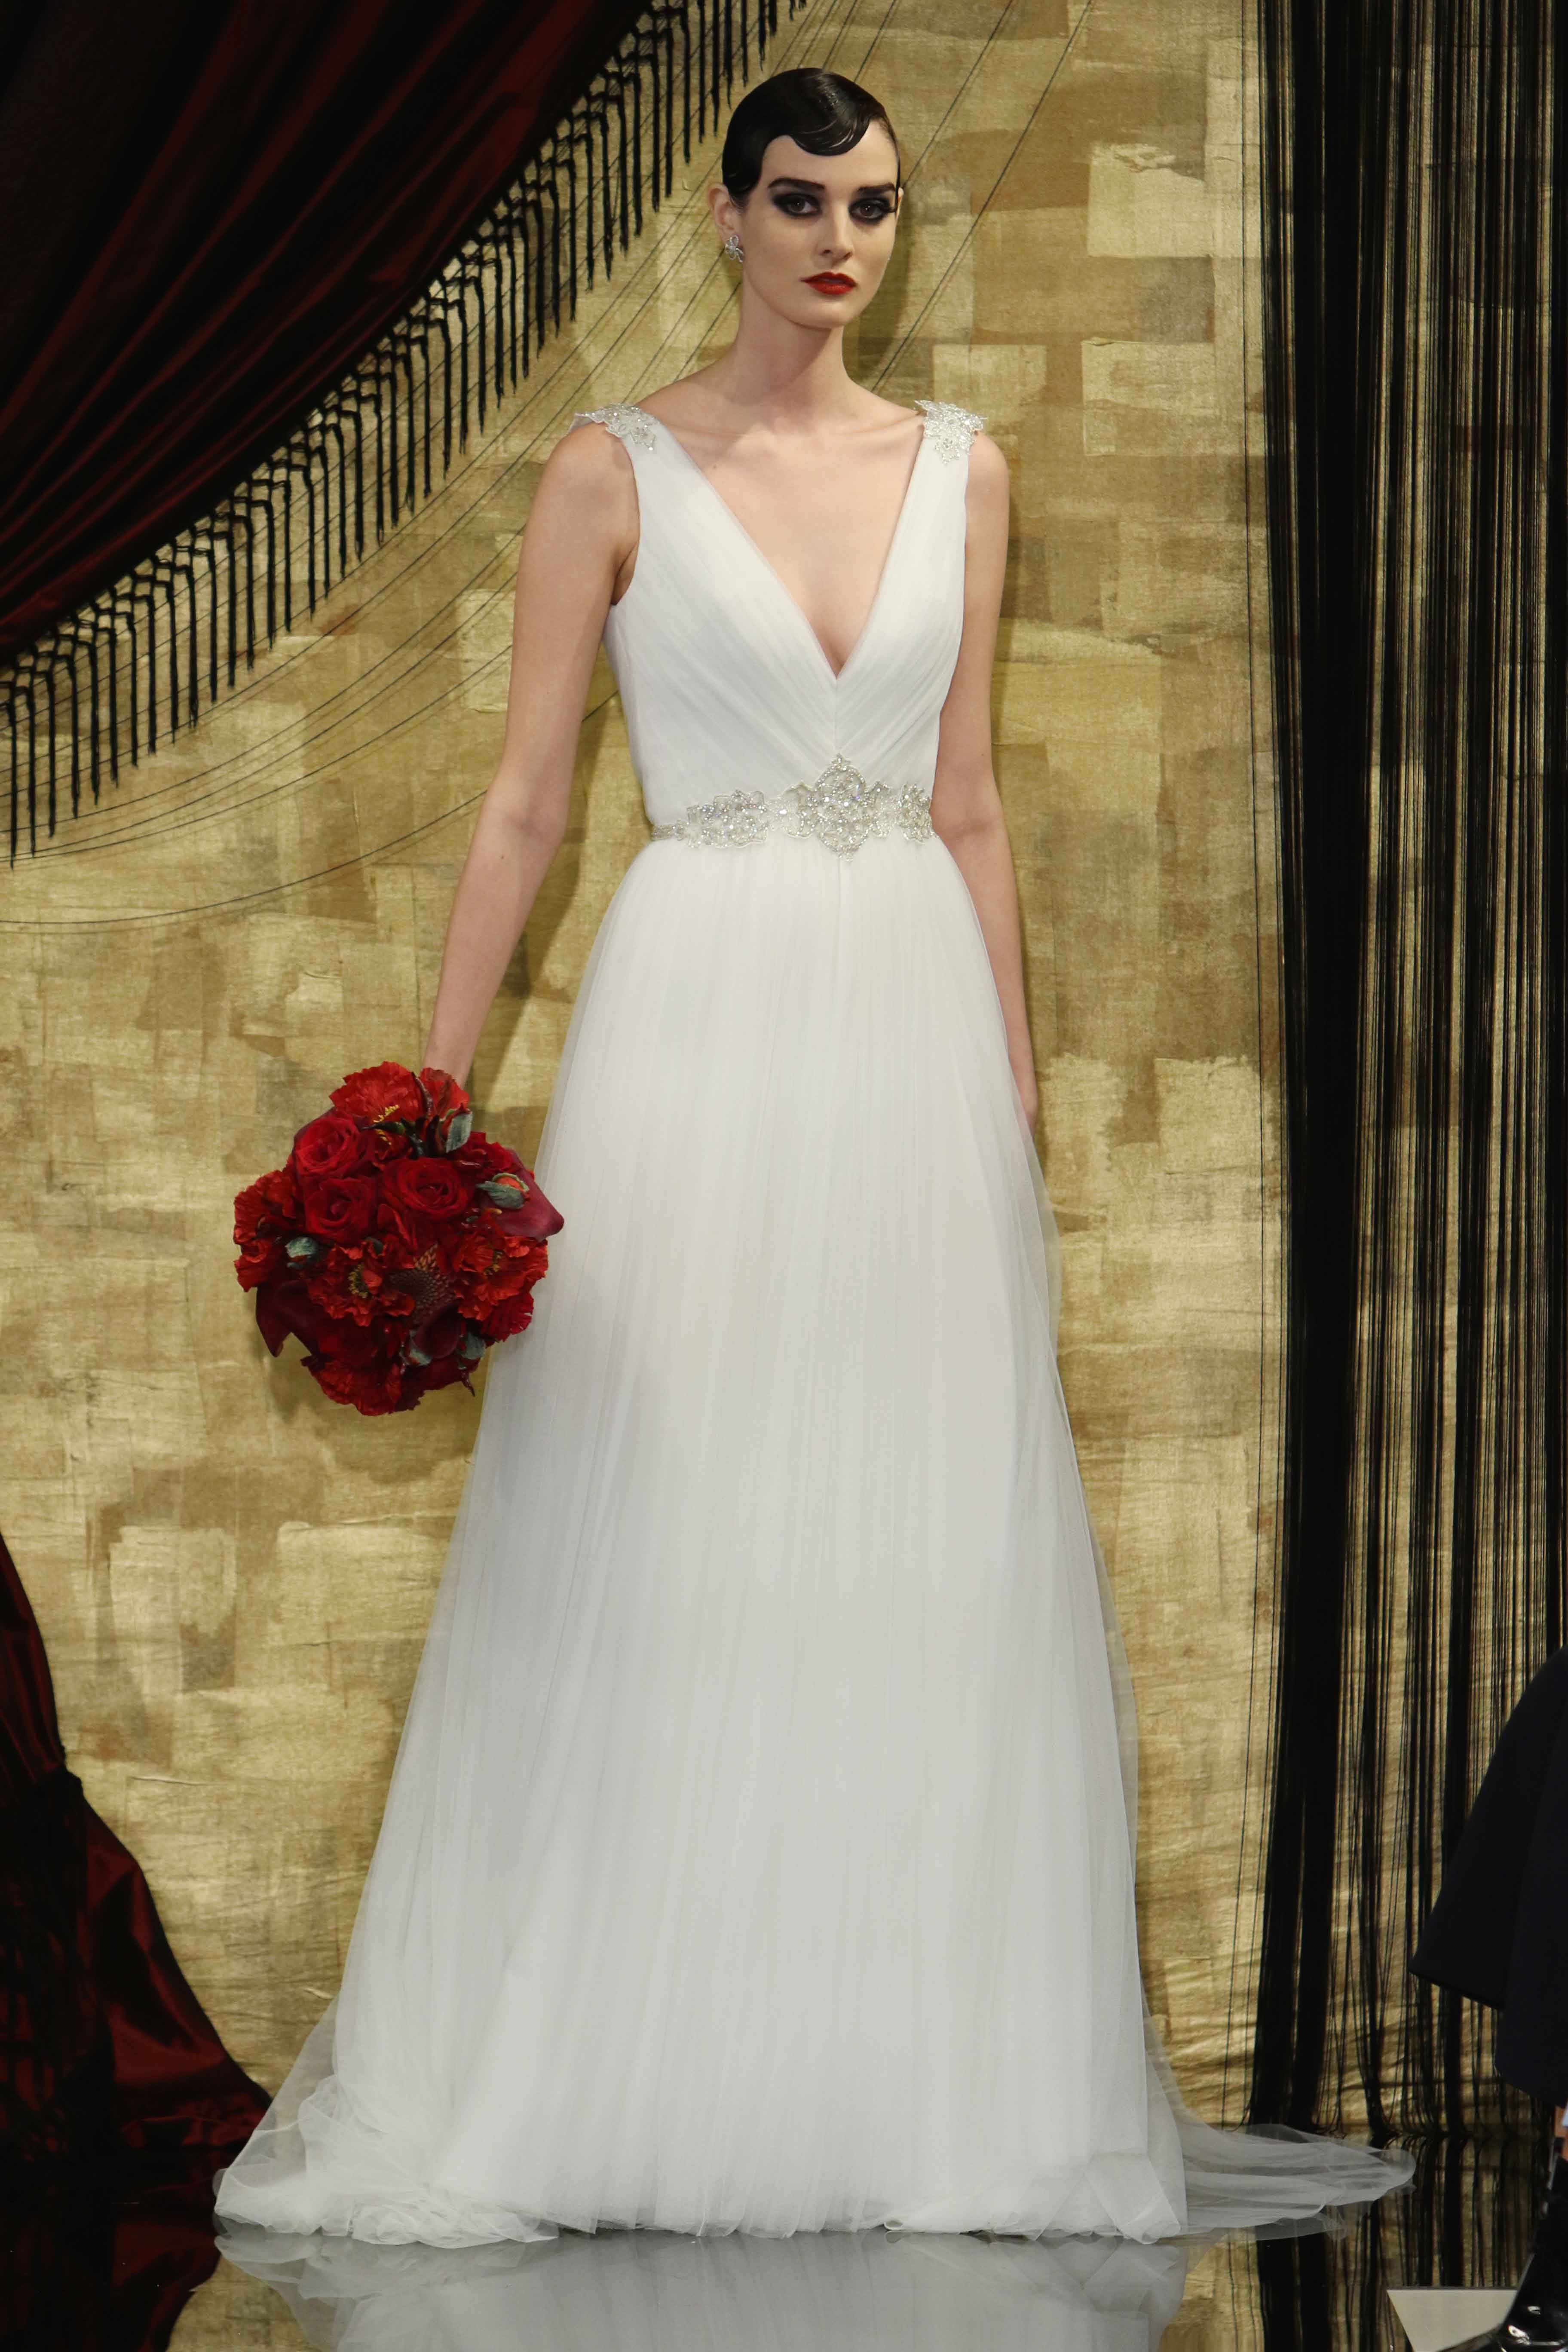 1920s inspired wedding dresses from theia fall 2016 wedding 1920s inspired wedding dresses from theia fall 2016 ombrellifo Choice Image